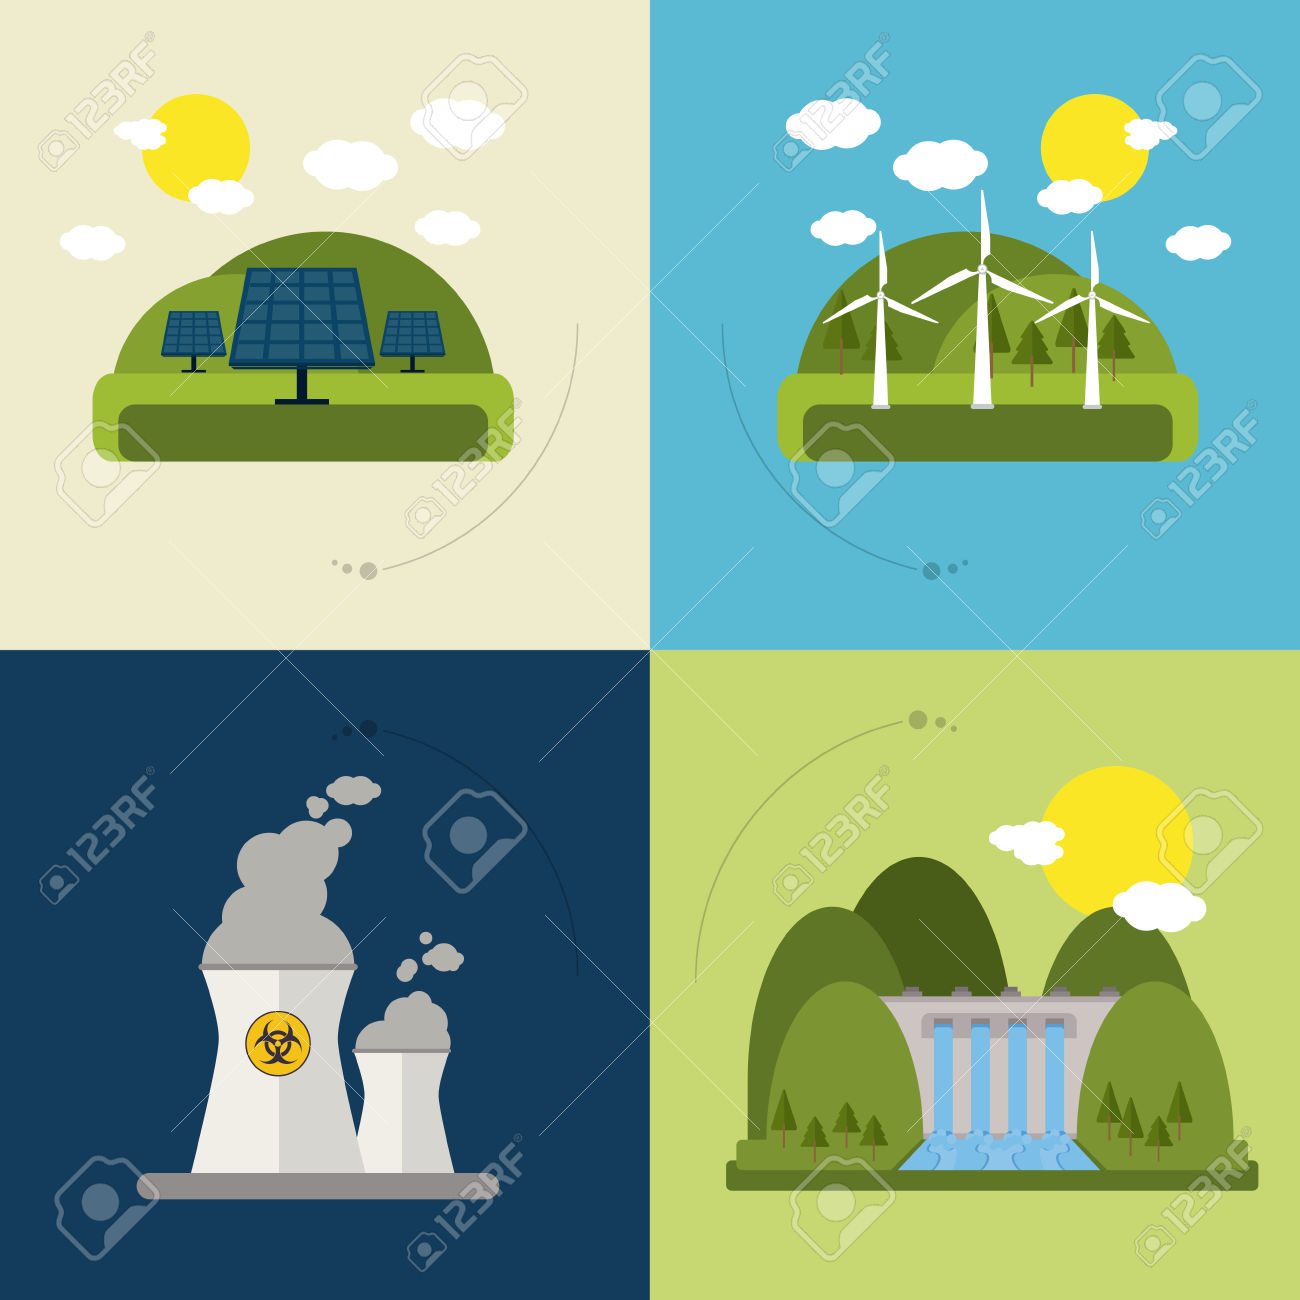 Clipart on save energy save environment svg black and white Save Energy Concept With Eco Icons Design, Vector Illustration ... svg black and white